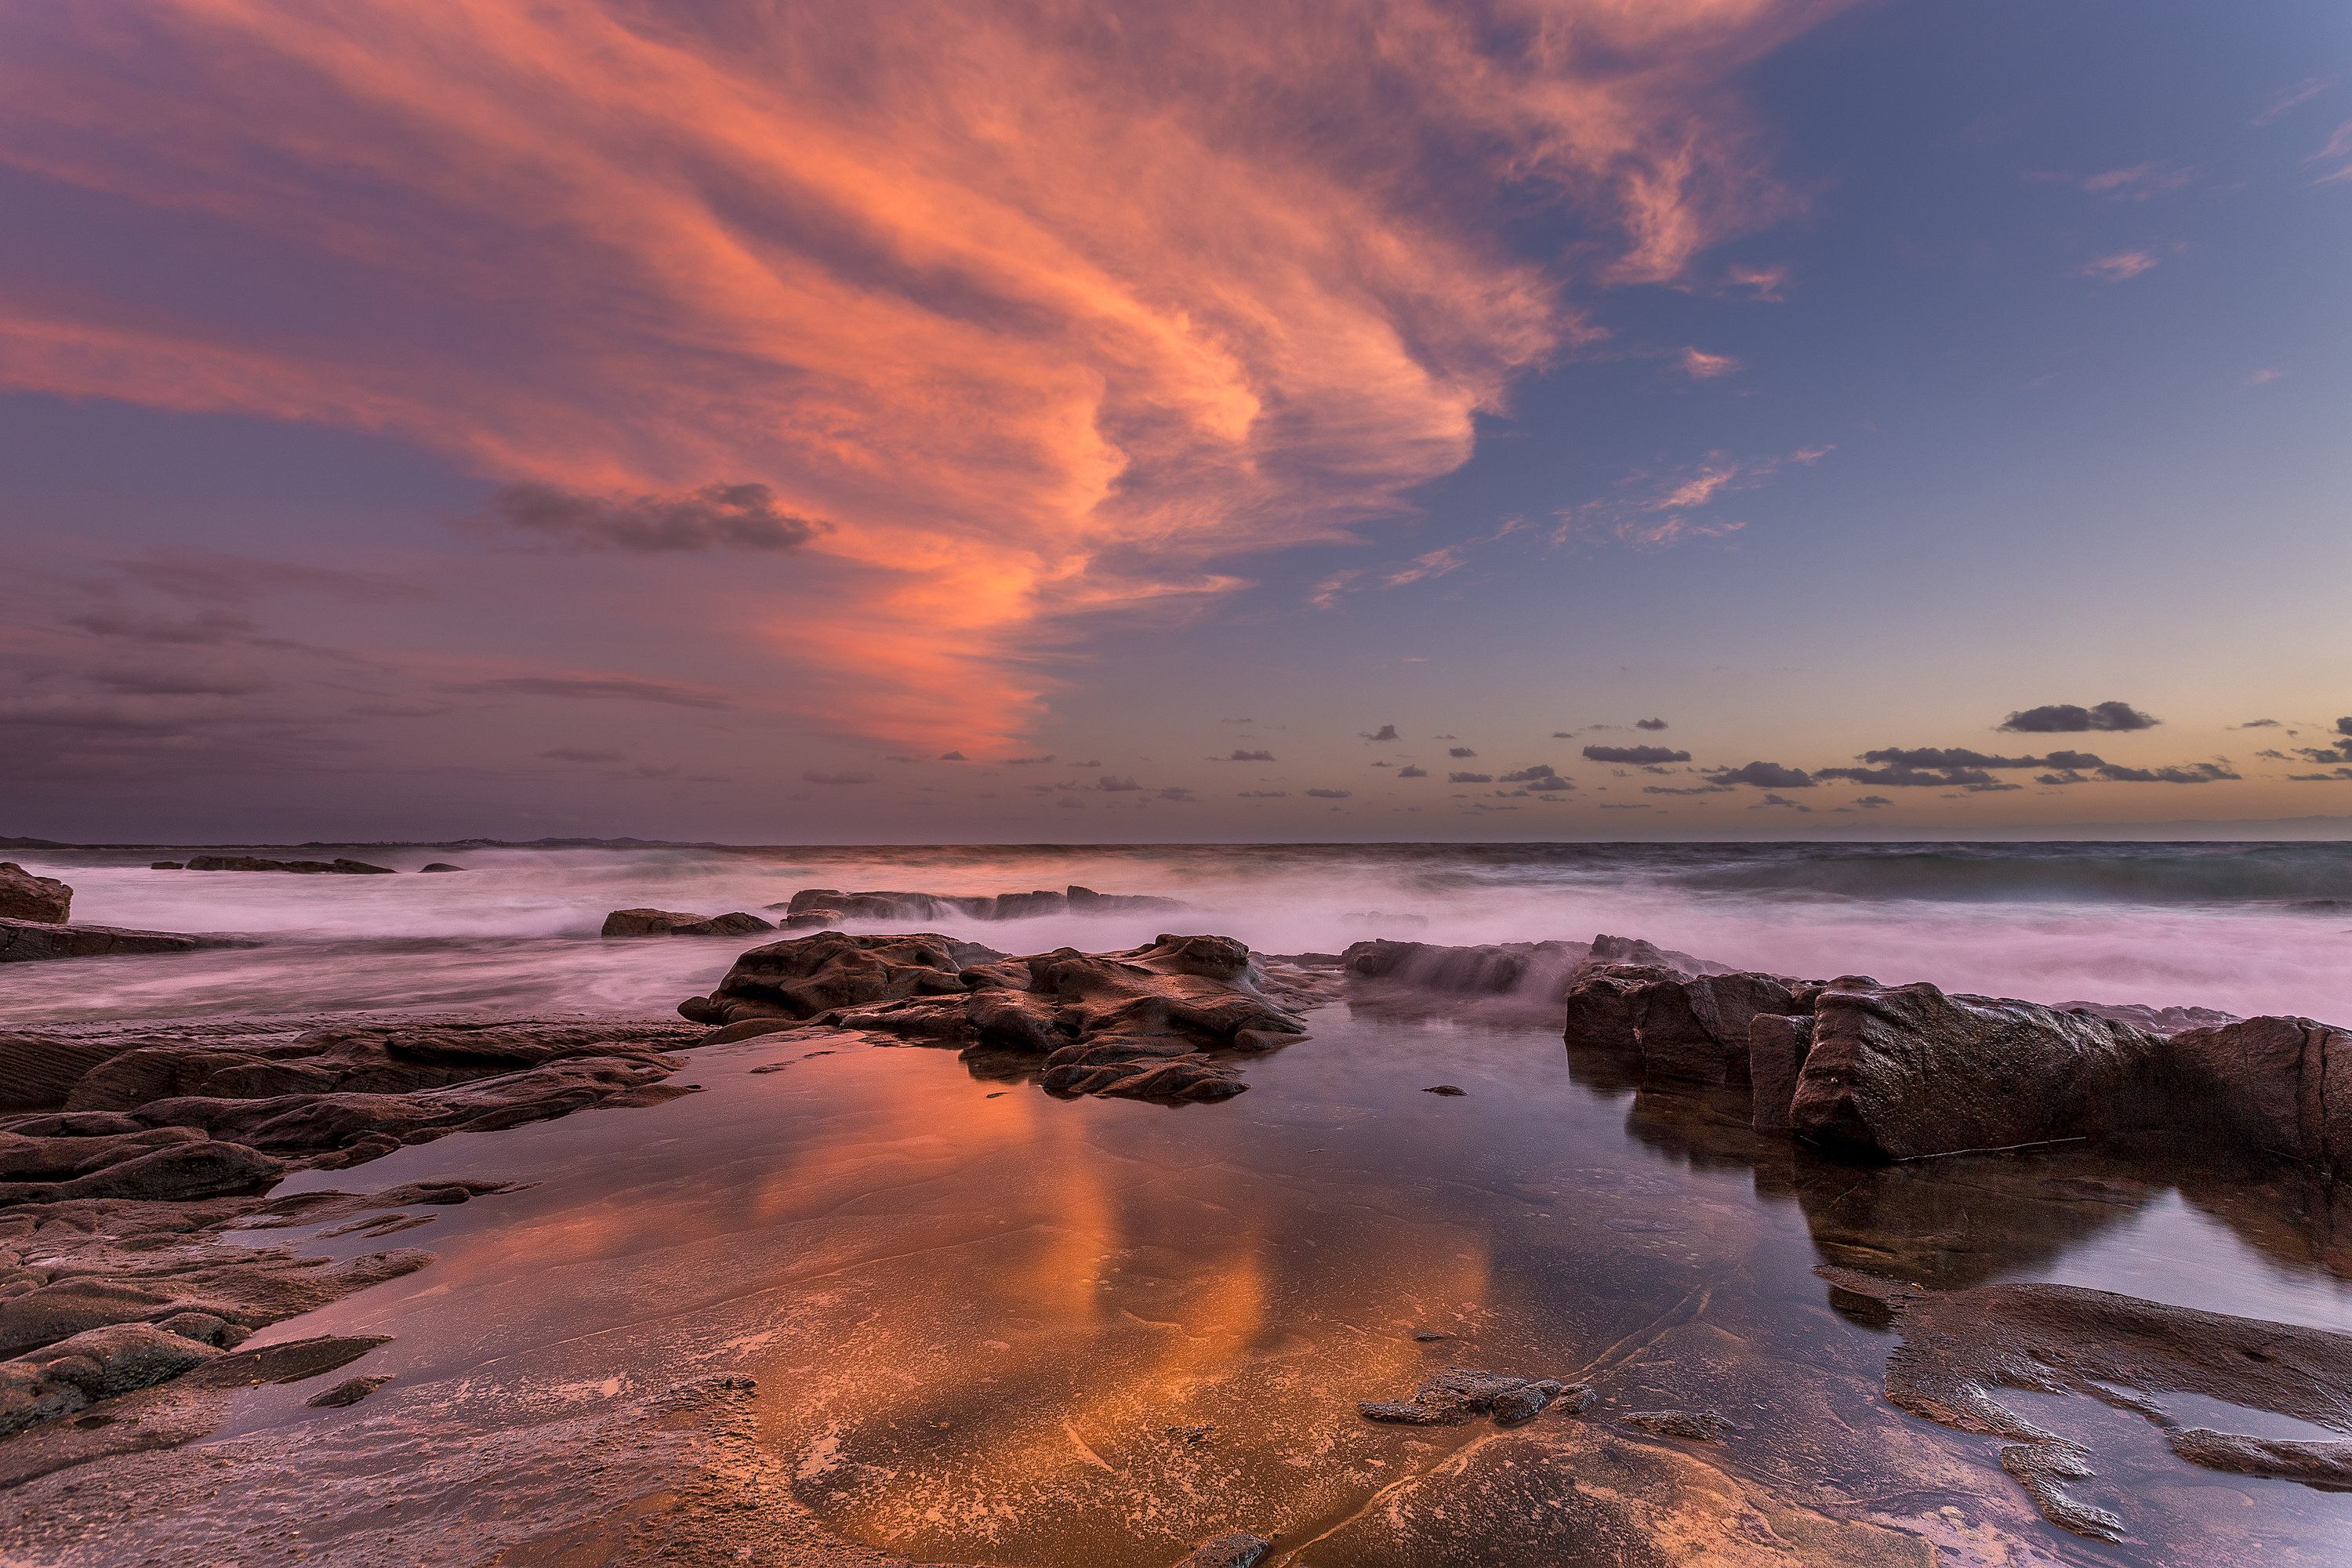 Amazing clouds reflected in rock-pools at Point Arkwright on the Sunshine Coast